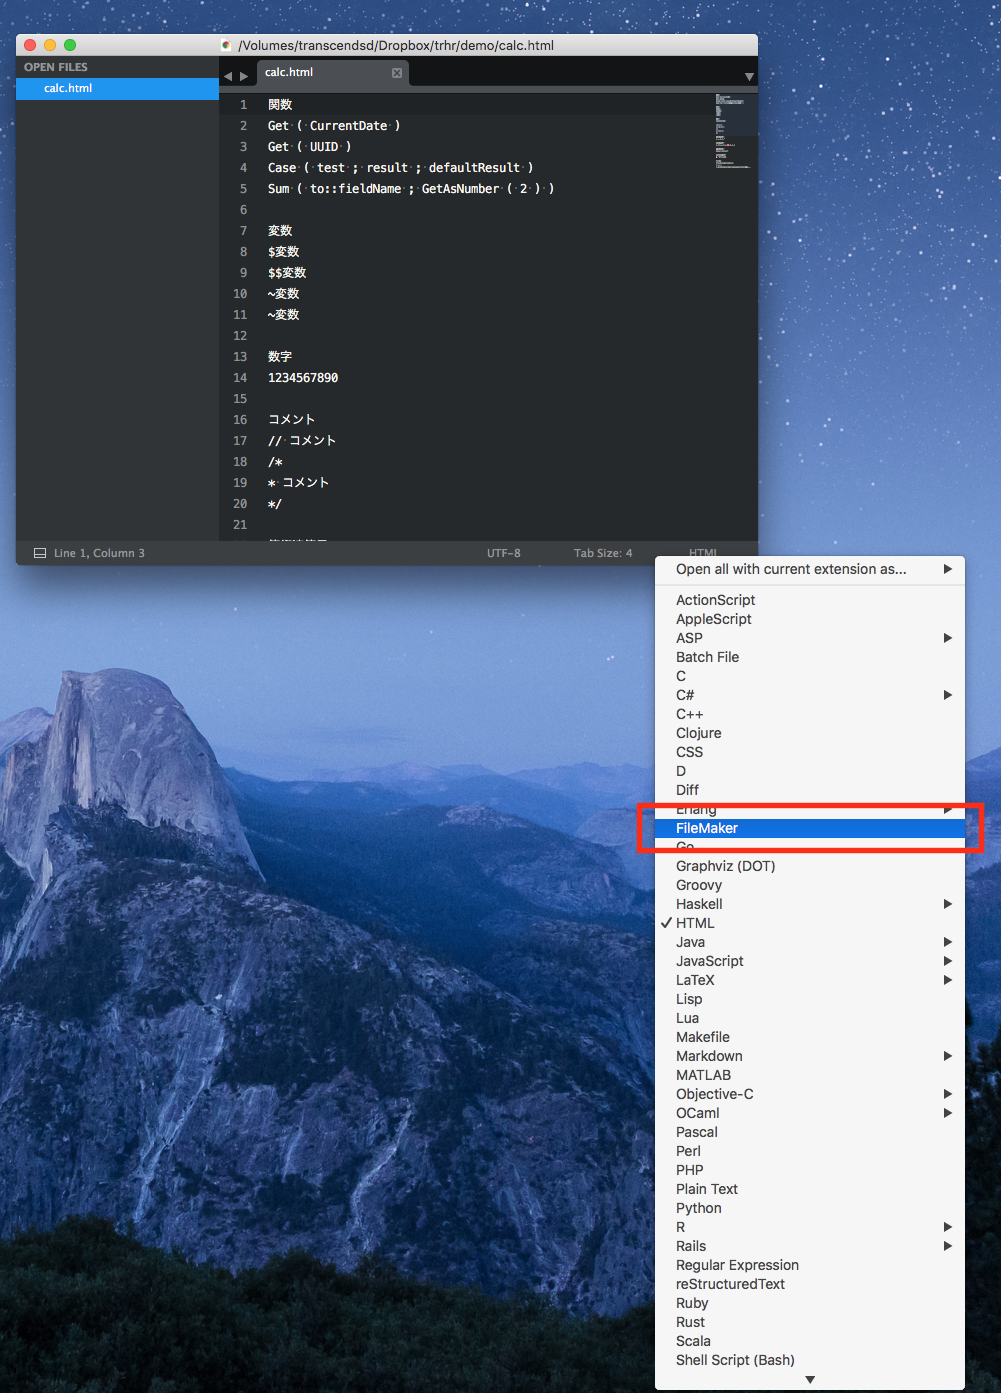 sublime-text-select-filemaker